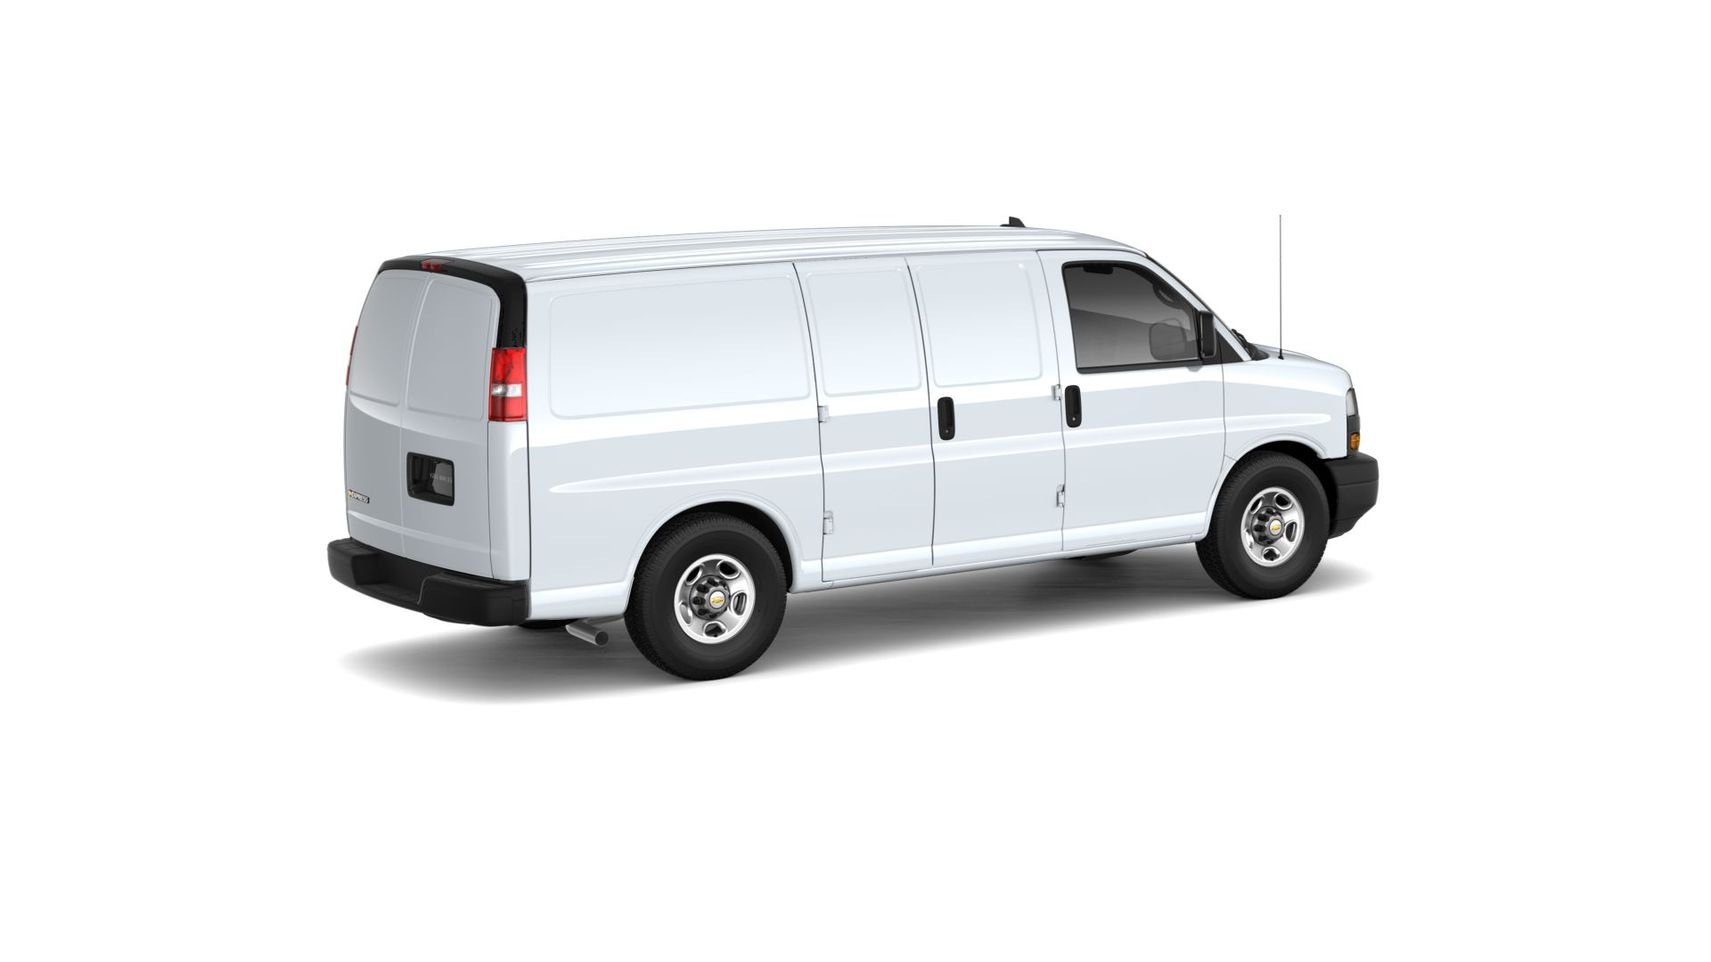 Chevrolet Express Cargo 2020 3500 Regular Wheelbase 4.3 V6 VVT Бензин 8 ст. АКПП Задний